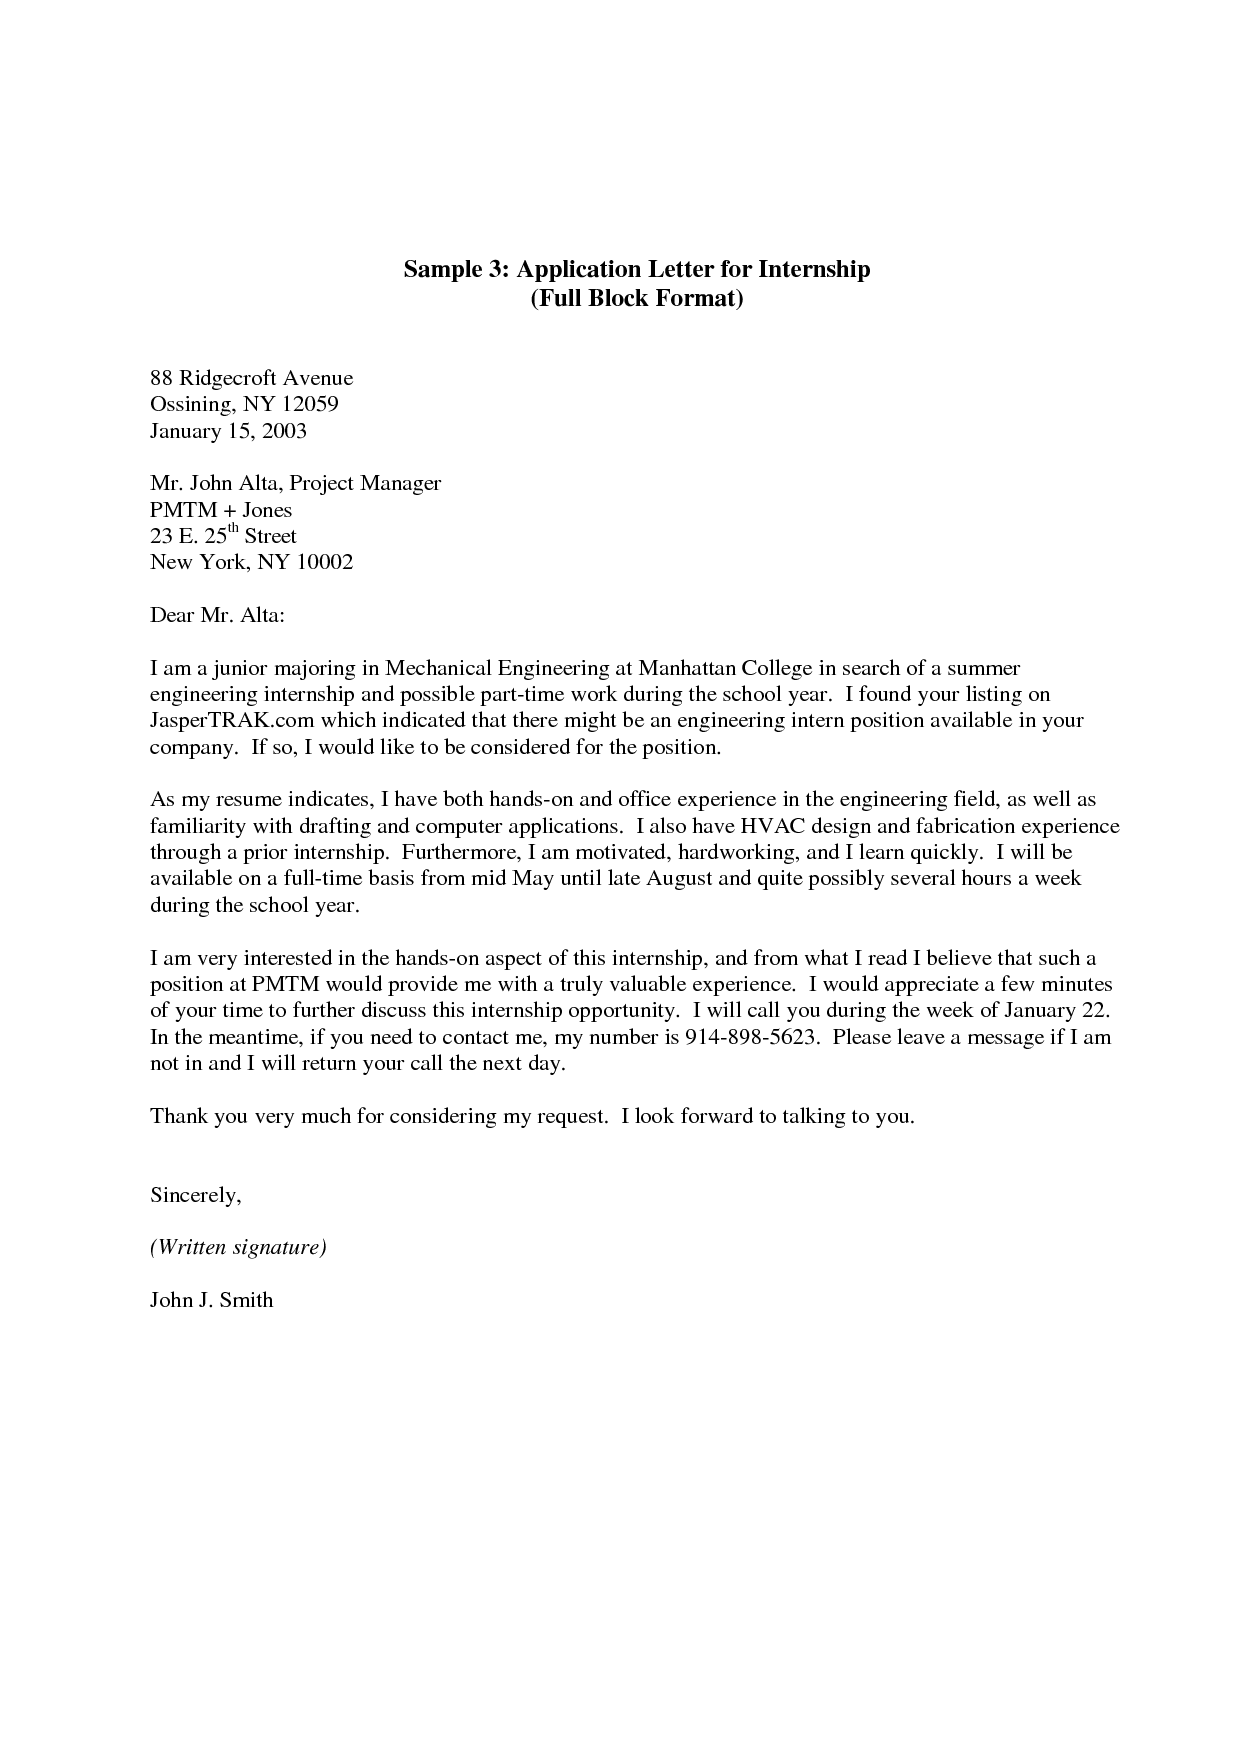 Elegant Internship Application Letter   Here Is A Sample Cover Letter For Applying  For A Job Or Internship.